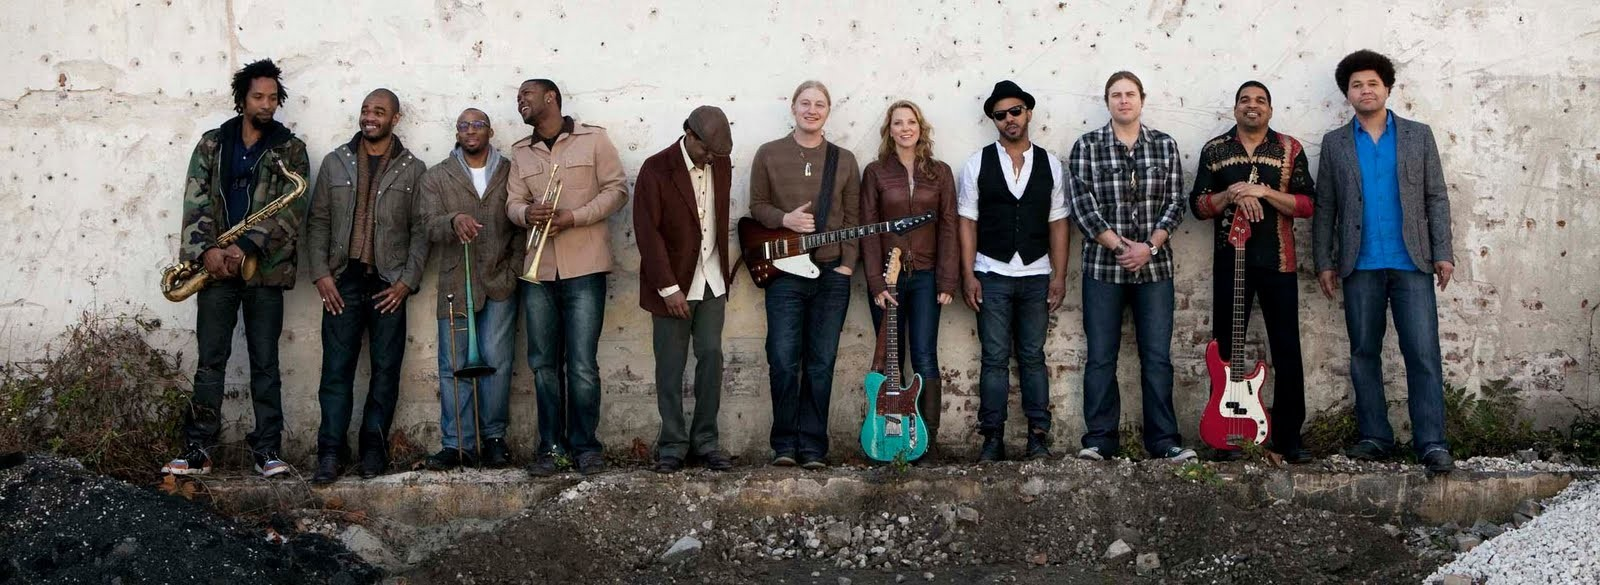 COLORBLIND BLUES:  The Tedeschi Trucks Band bring their soulful sounds to Vina Robles Amphitheatre on Aug. 9. - PHOTO COURTESY OF THE TEDESCHI TRUCKS BAND